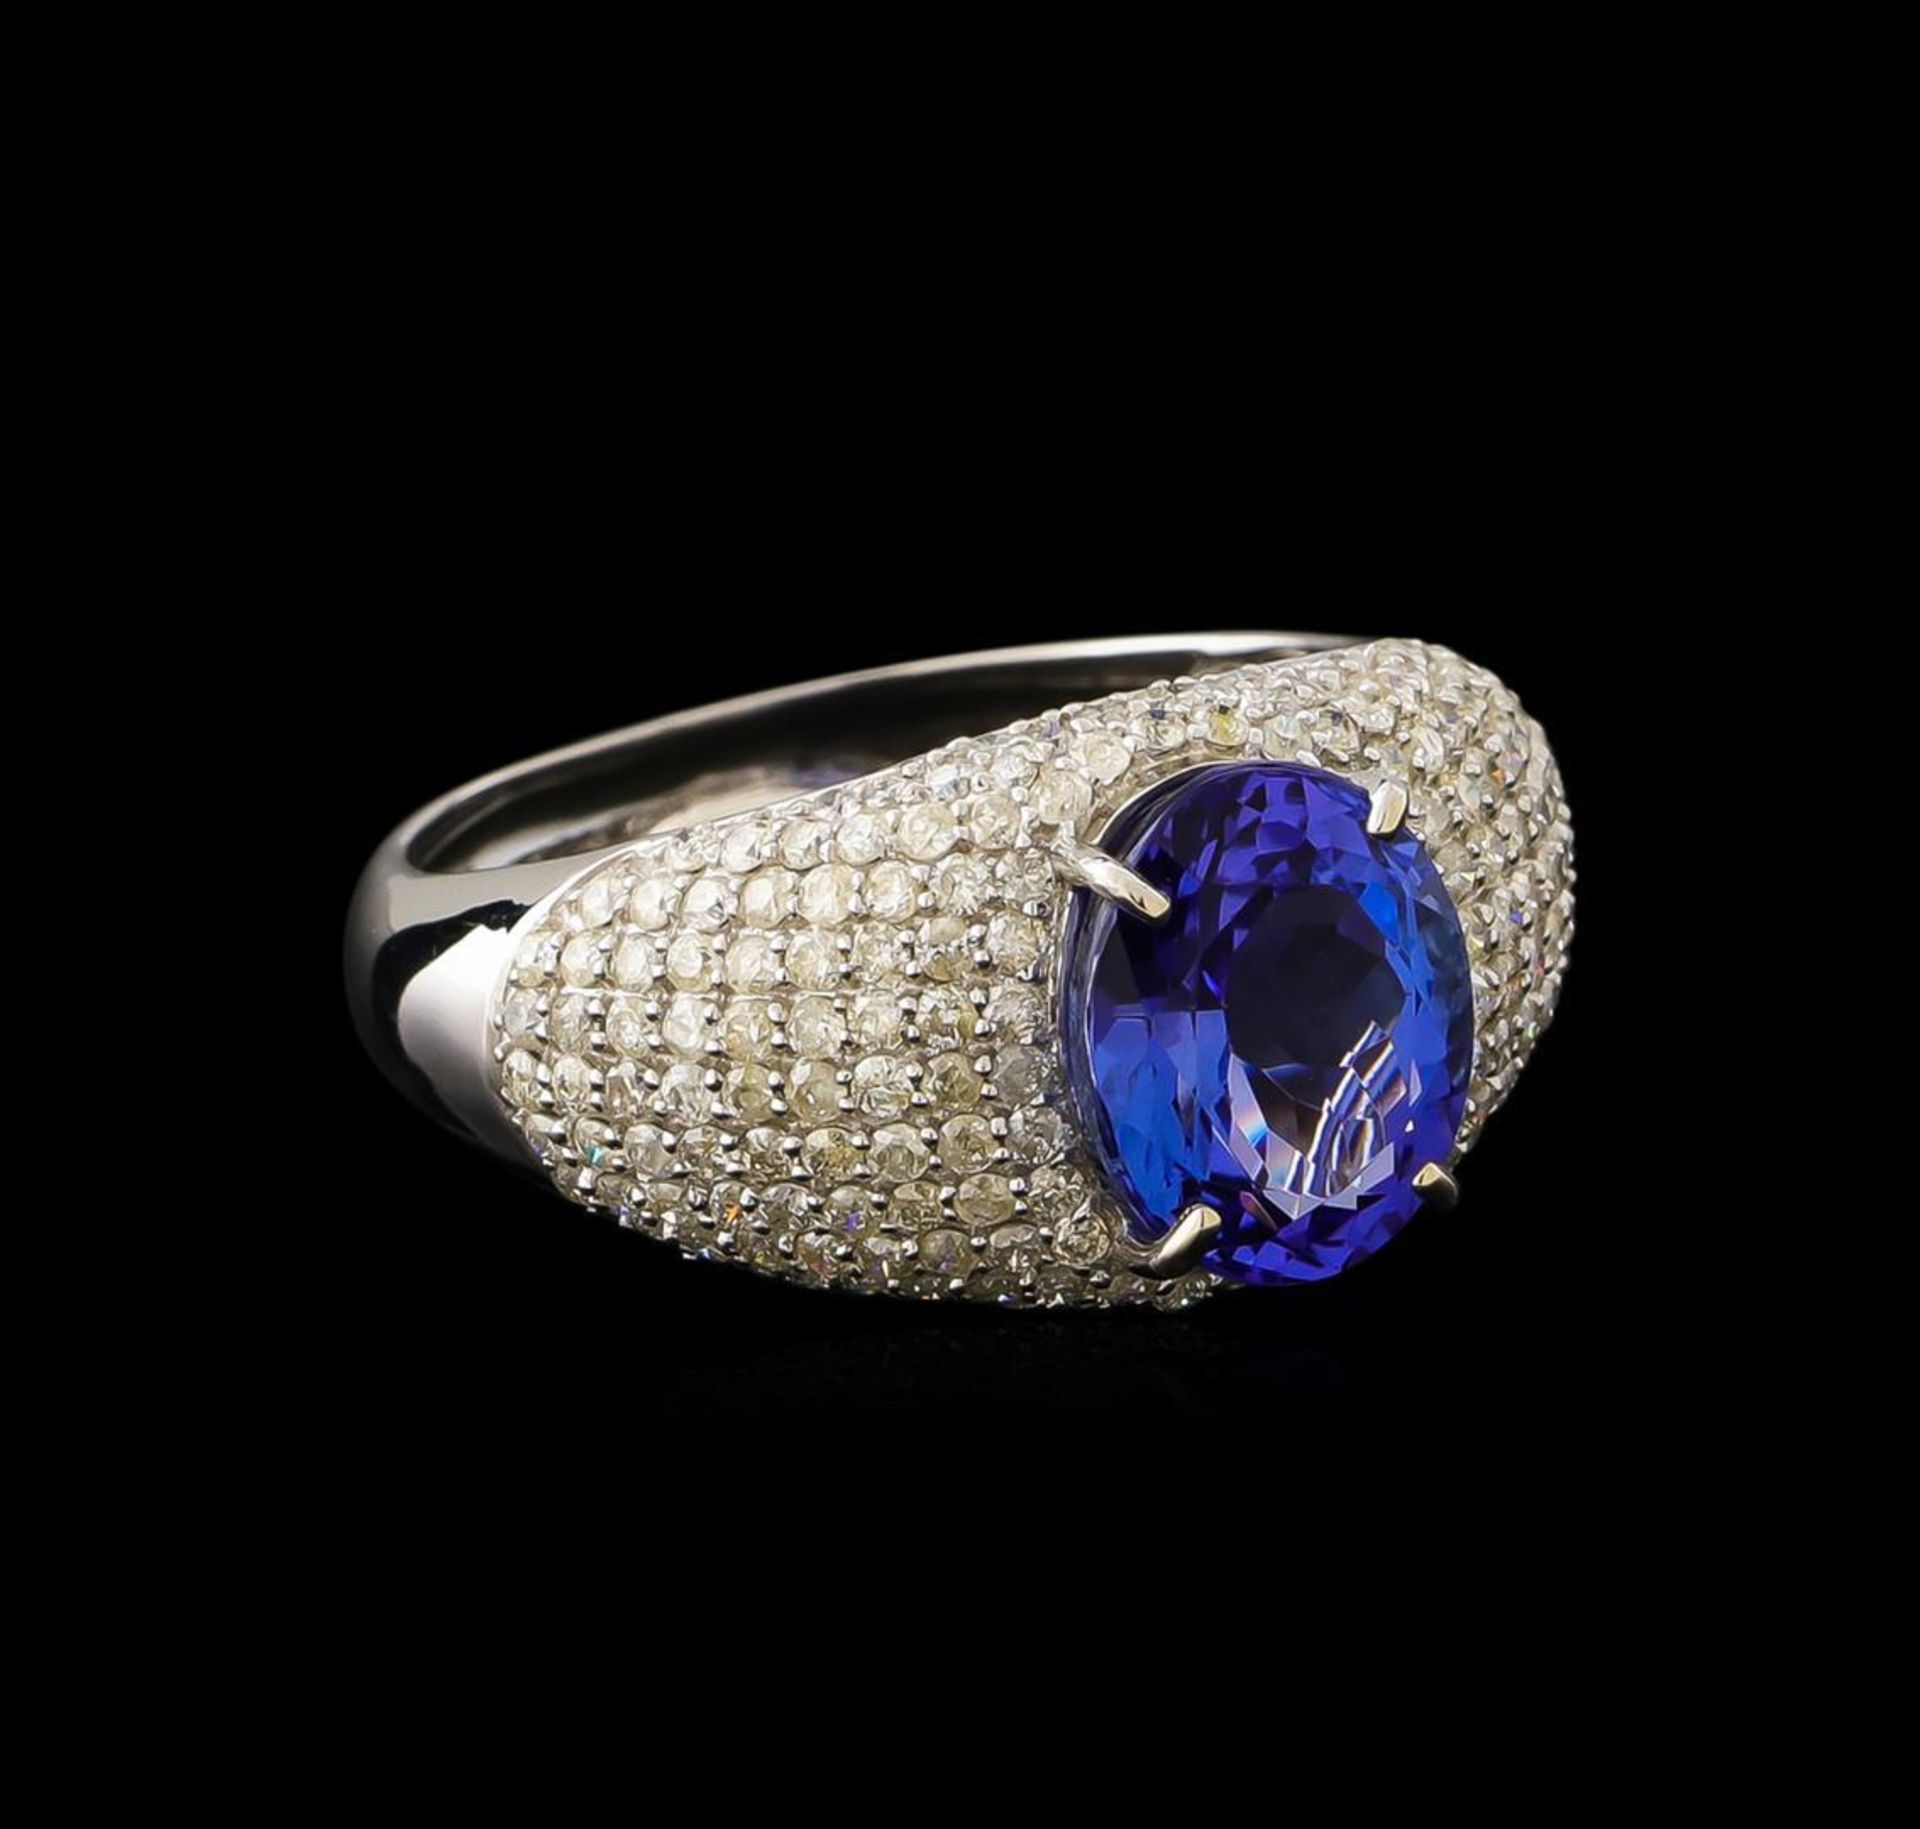 2.77ct Tanzanite and Diamond Ring - 14KT White Gold